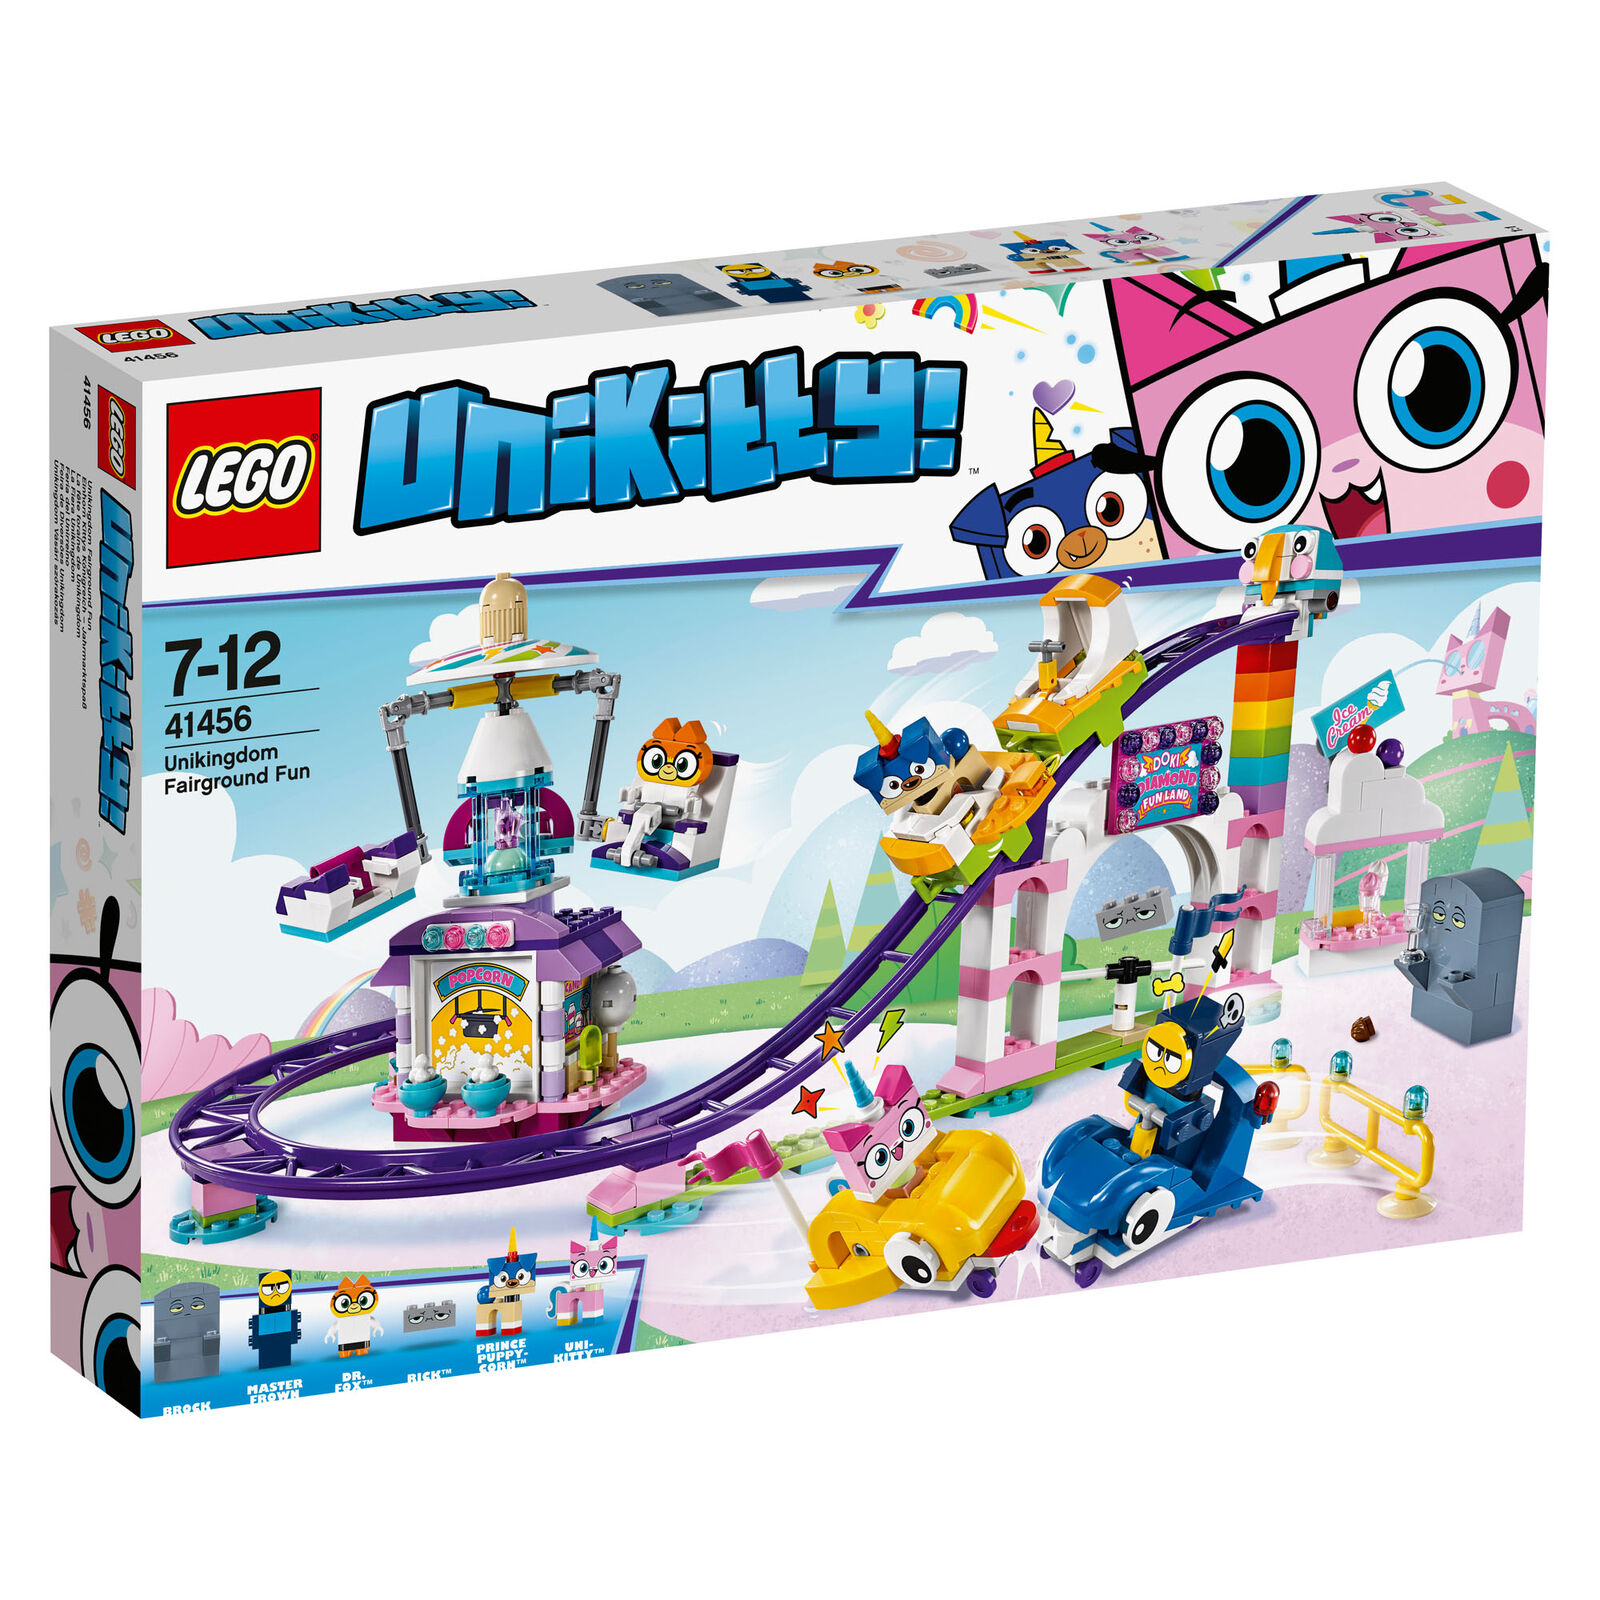 41456 LEGO Unikitty Unikingdom Fairground Fun Set 515 Pieces Age 7+